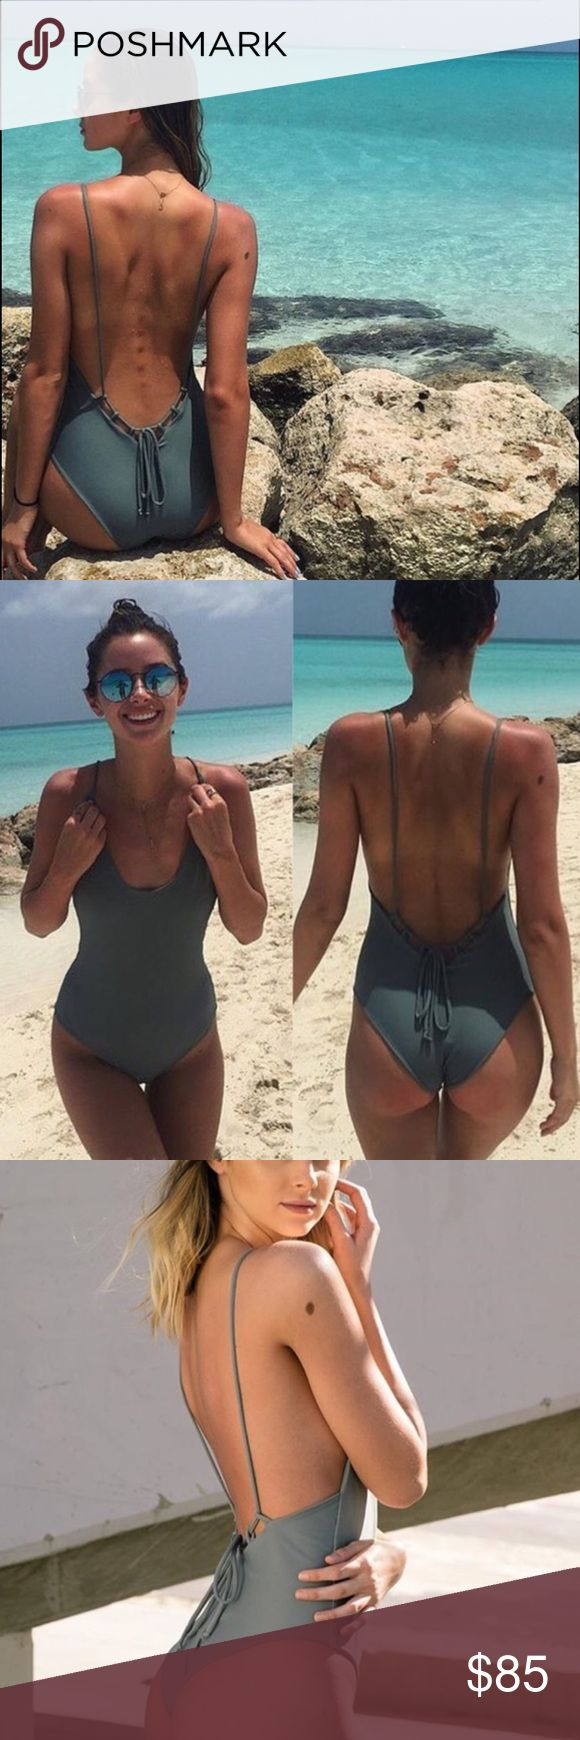 Low back one piece bikini NWT! This is hand made by a local brand in SoCal. Color is in slate! NOT MIKOH. The suit is very comfortable, stretchy, and flattering! My price is firm on poshmark. $80 shipped ️️ Mikoh Swim One Pieces